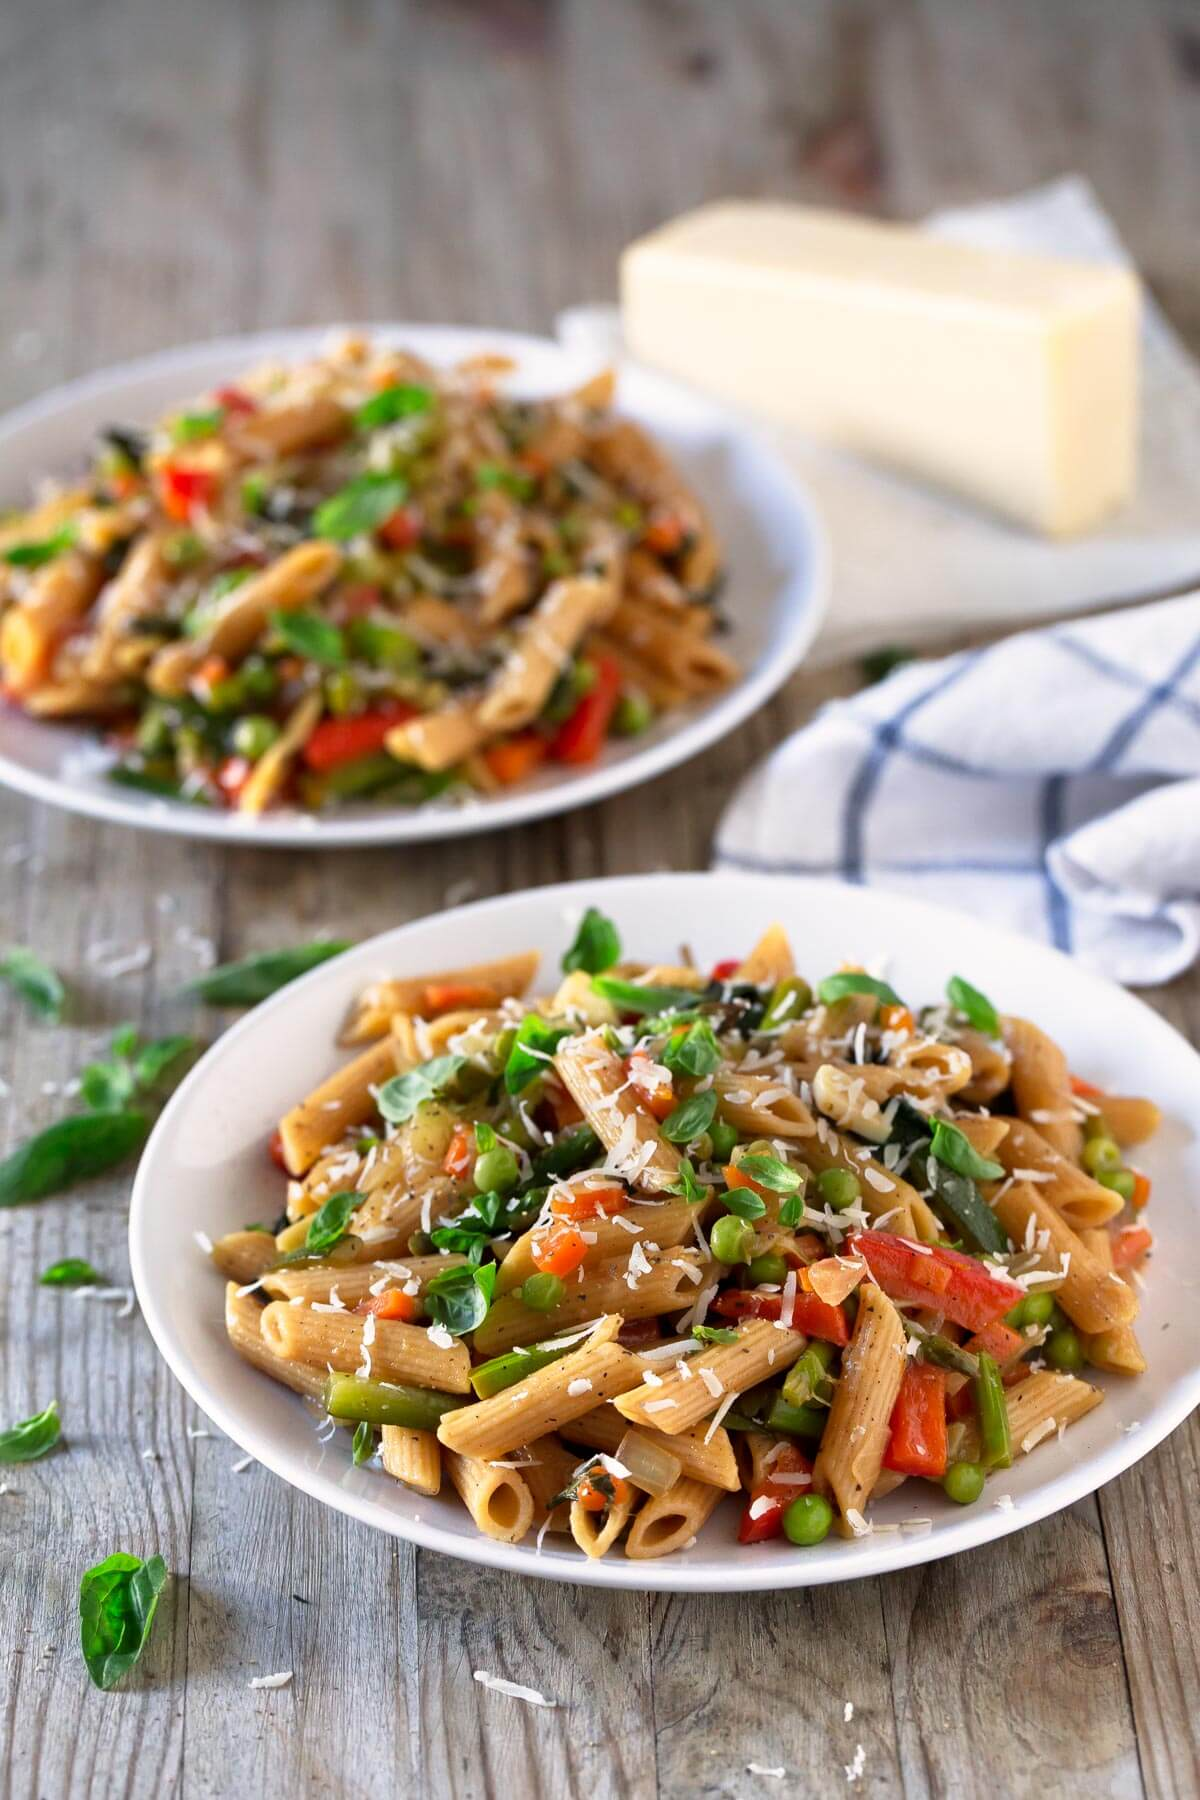 Pasta Primavera.- This pasta recipe is perfect for taking advantage of the vegetables that are in season in spring, although it can be adapted to any other time of the year.